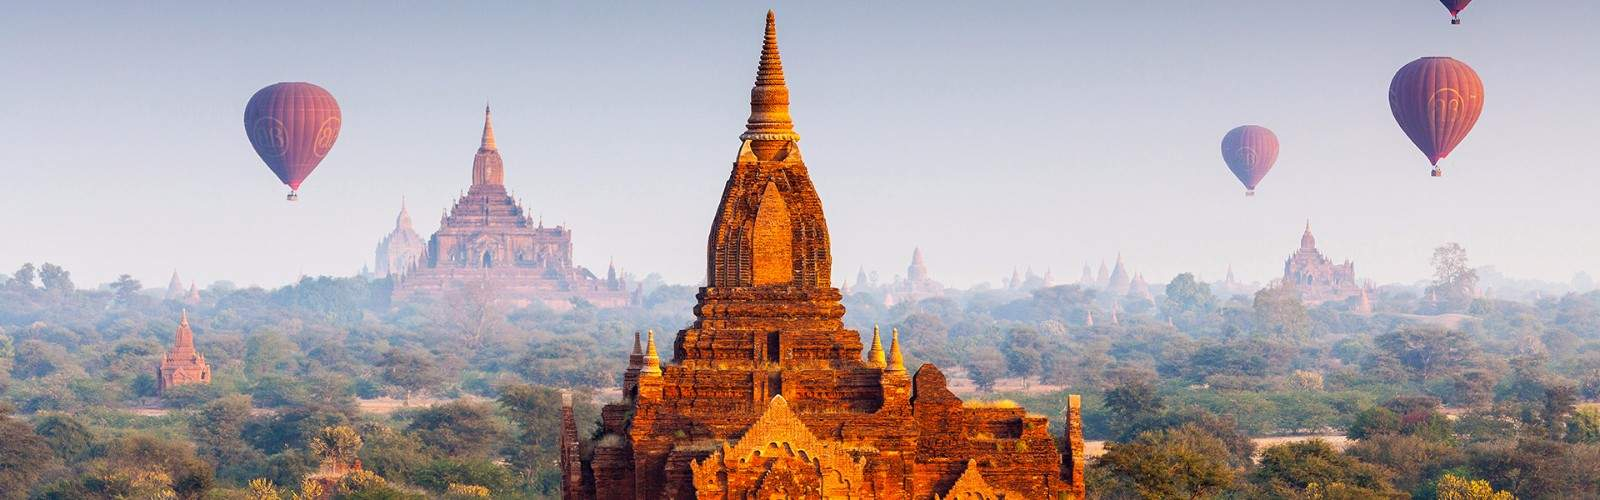 Temples of Bagan Holidays